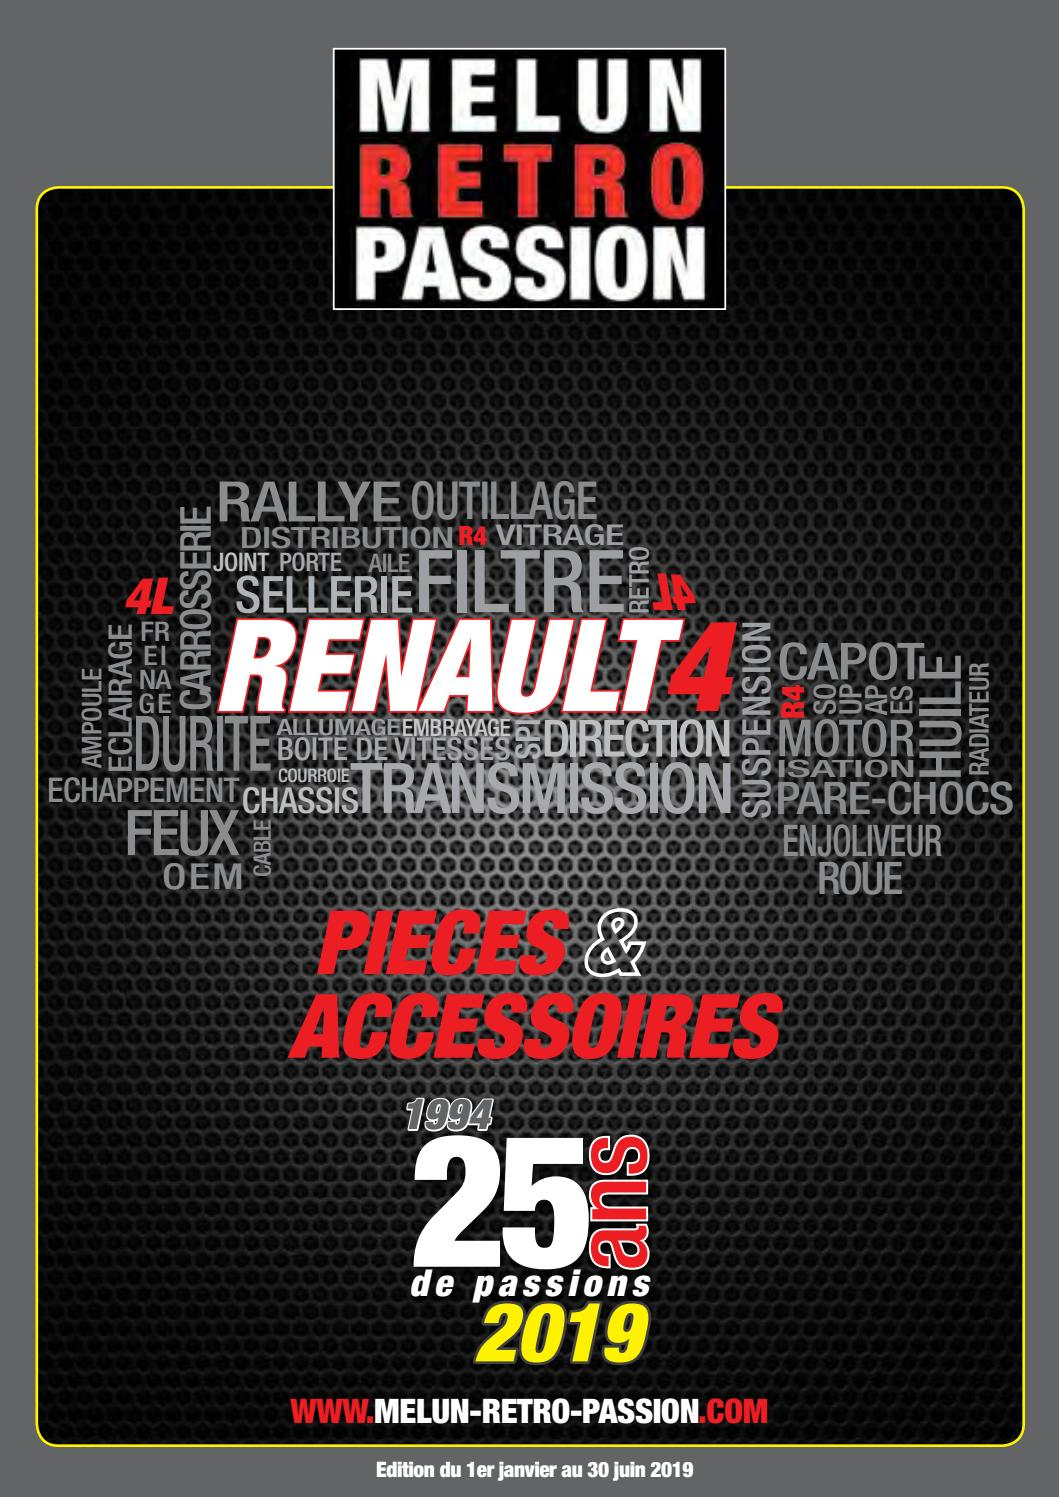 Cetelem Virement 48h Catalogue Renault 4 Melun Retro Passion